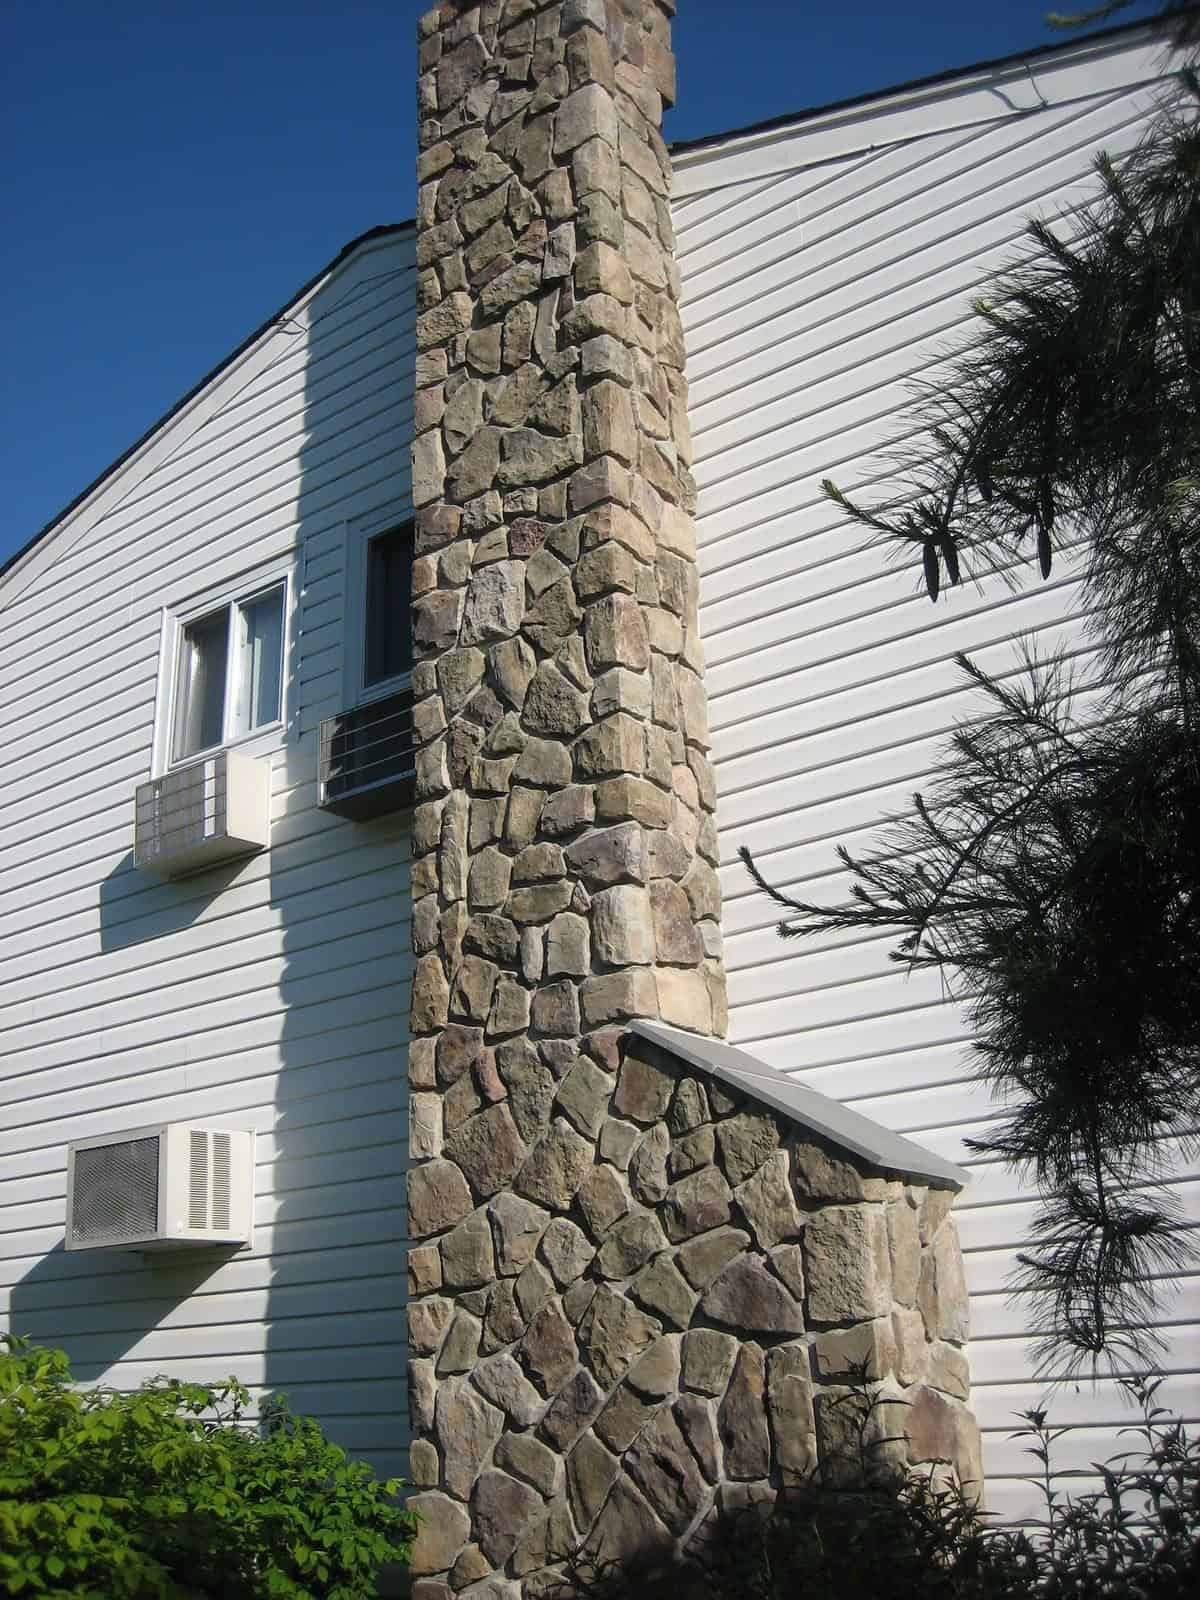 Chimney veneered in Cultured Stone Dressed Fieldstone - Bucks County - with Thermal Bluestone cap - Dix Hills, Long Island NY